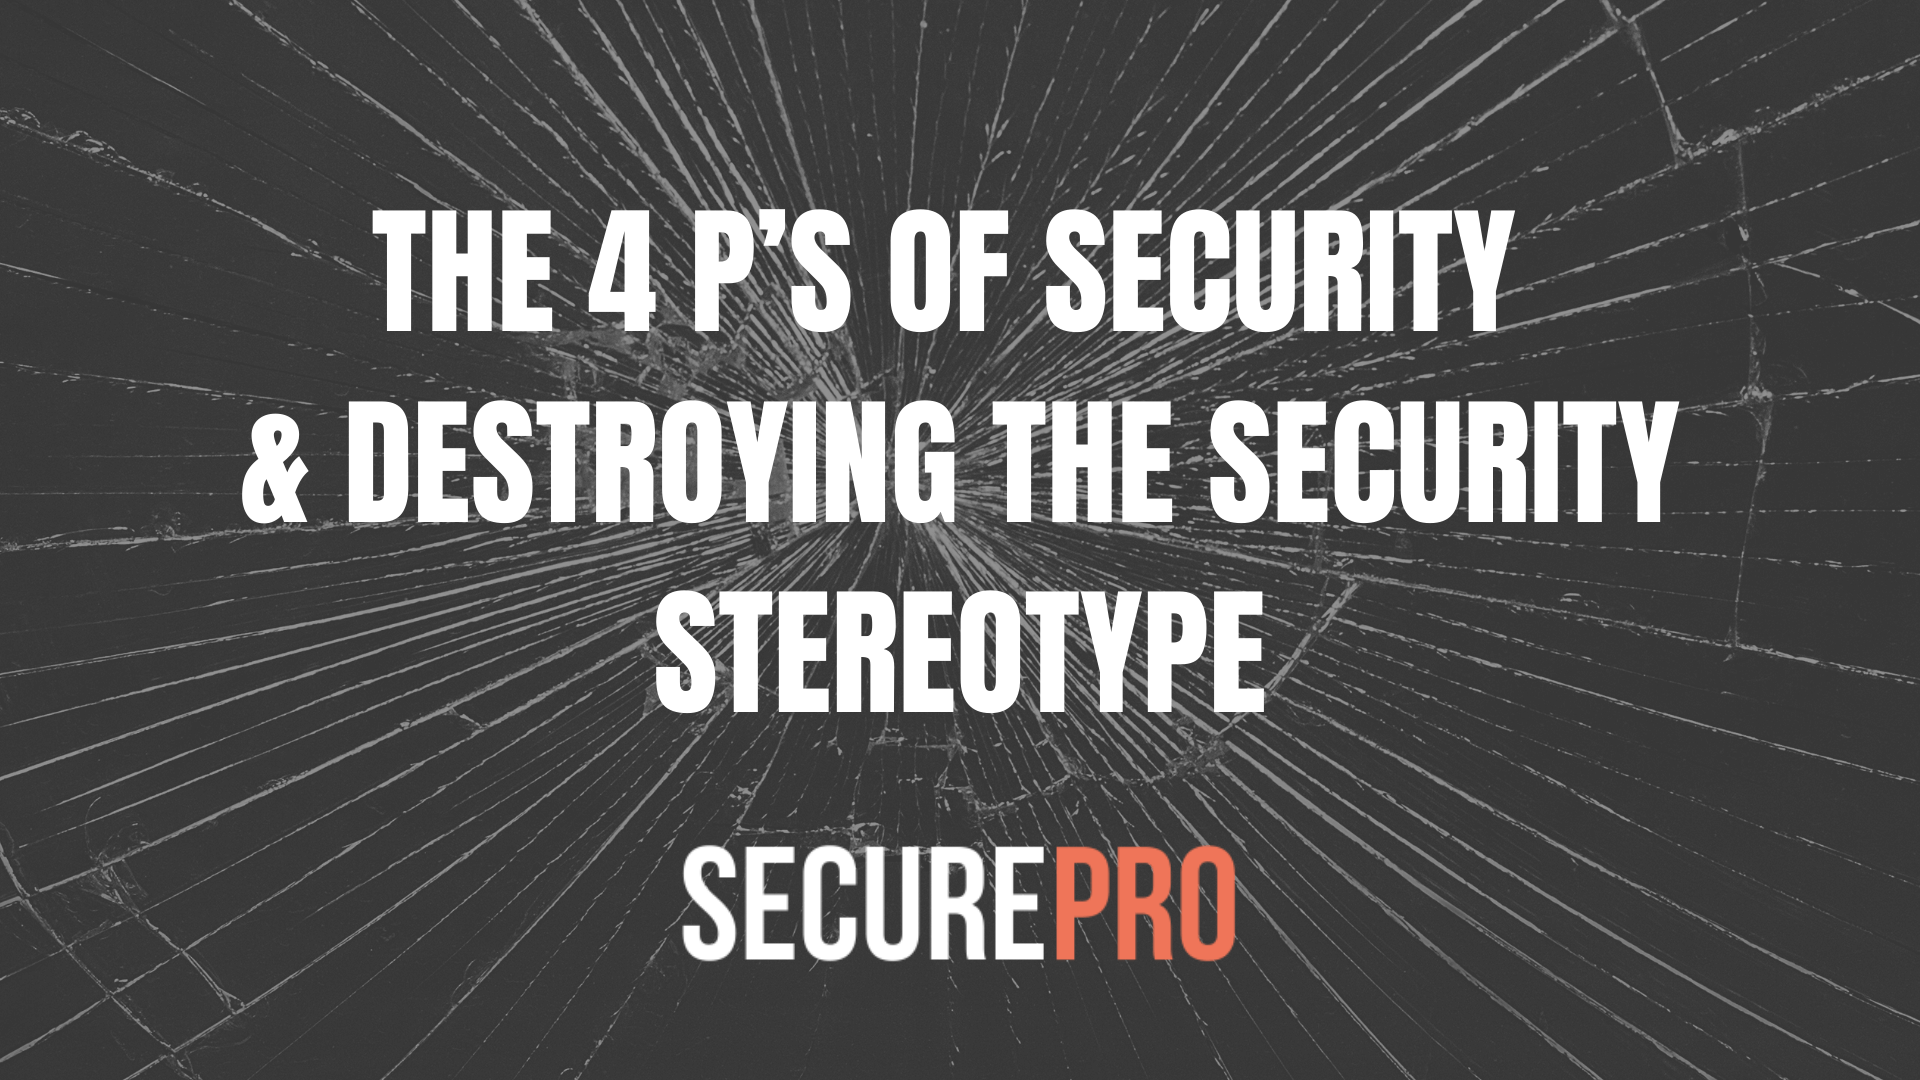 SecurePro Birmingham - The 4p's of Security